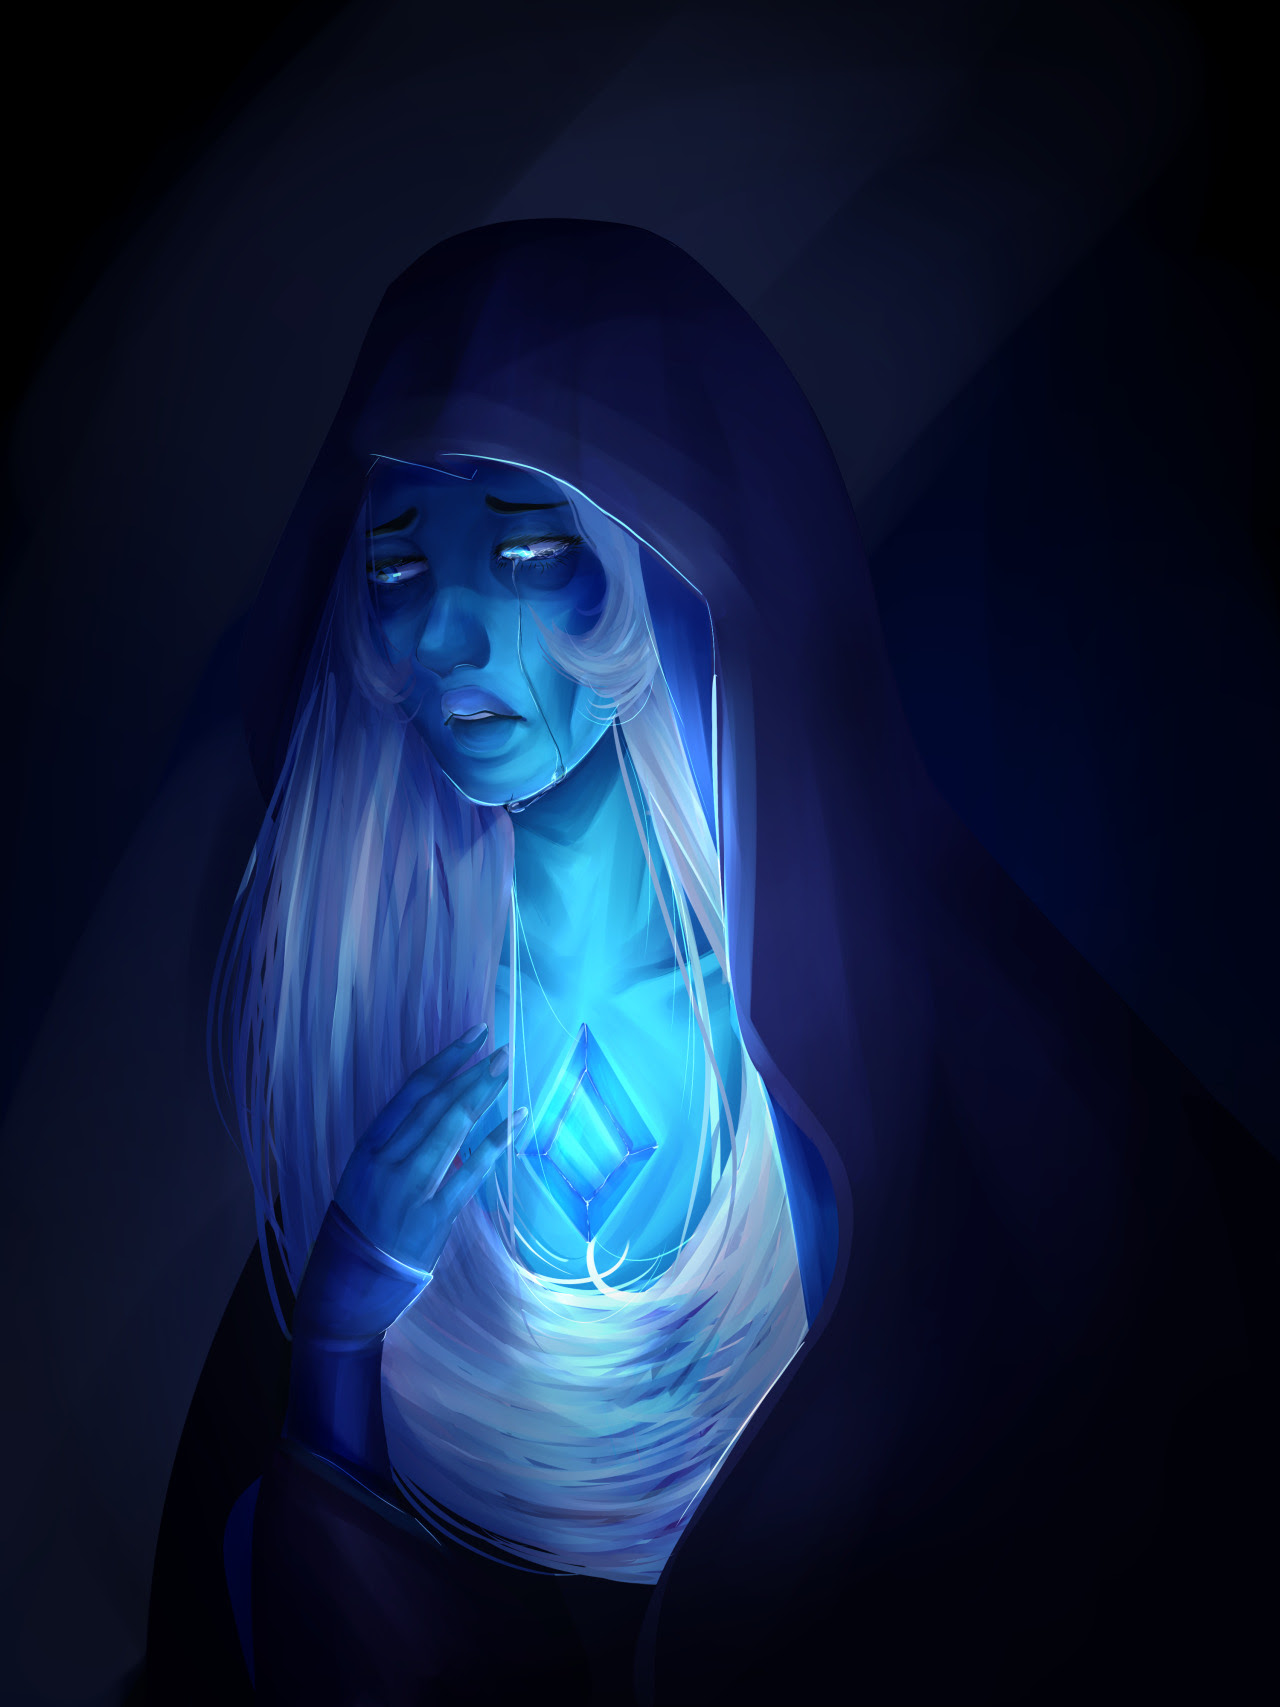 Blue diamond from Steven universe I really love her